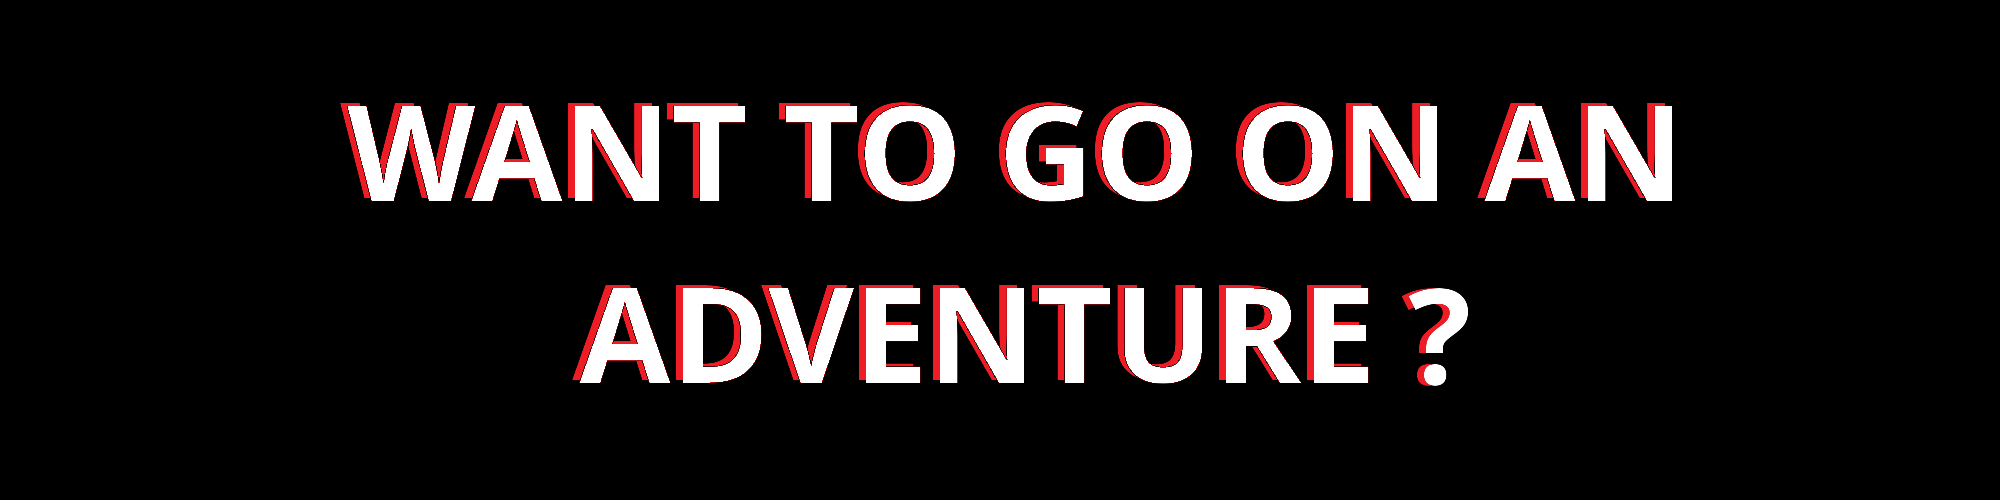 YES/NO adventure game